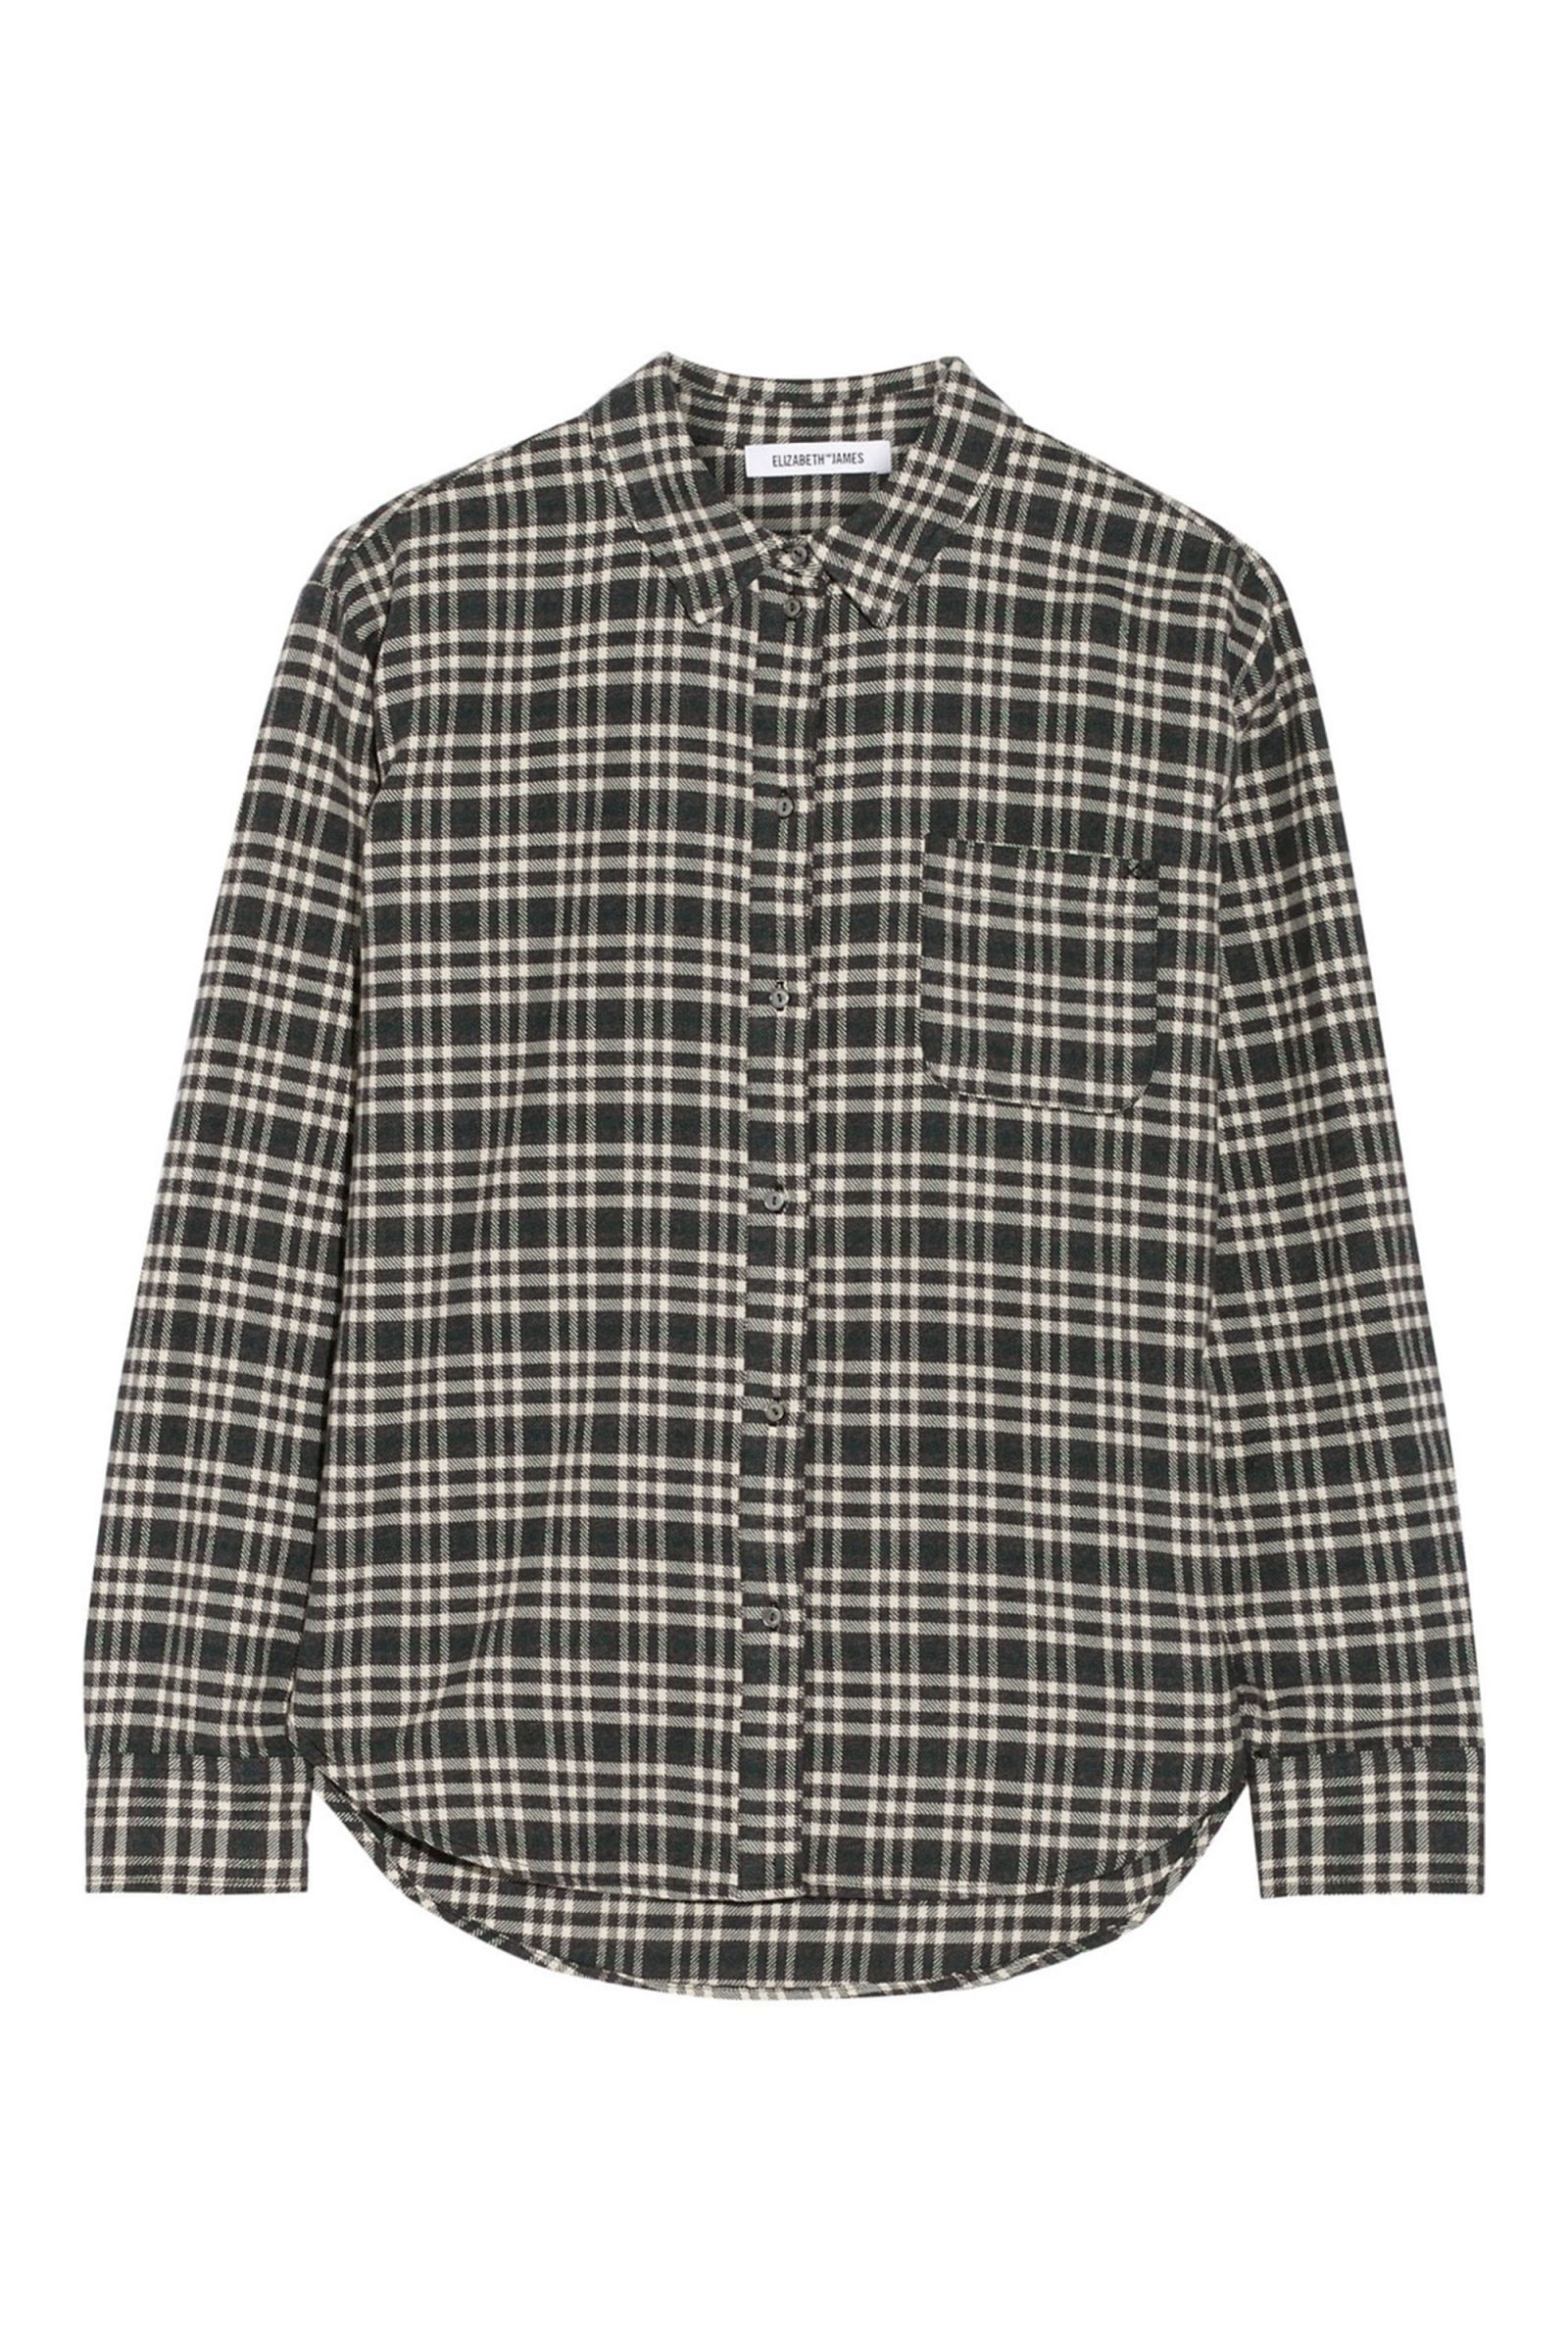 Flannel shirt for girls   Plaid Shirts to Wear While BingeWatching uGilmore Girls